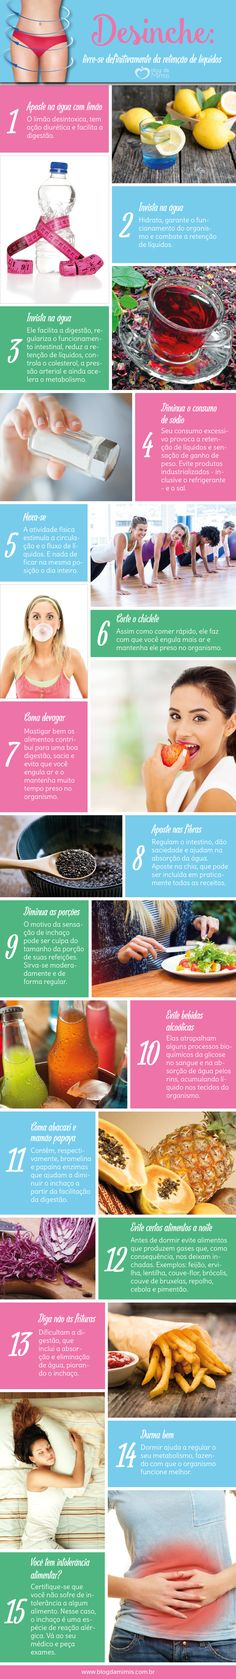 super low calorie foods, how to reduce weight in 10 days by yoga, best vegan weight loss plan, how to lose weight fast in 3 days, average . Healthy Habits, Healthy Tips, Healthy Recipes, Healthy Drinks, Health And Wellness, Health Fitness, Dietas Detox, Bebidas Detox, Menu Dieta